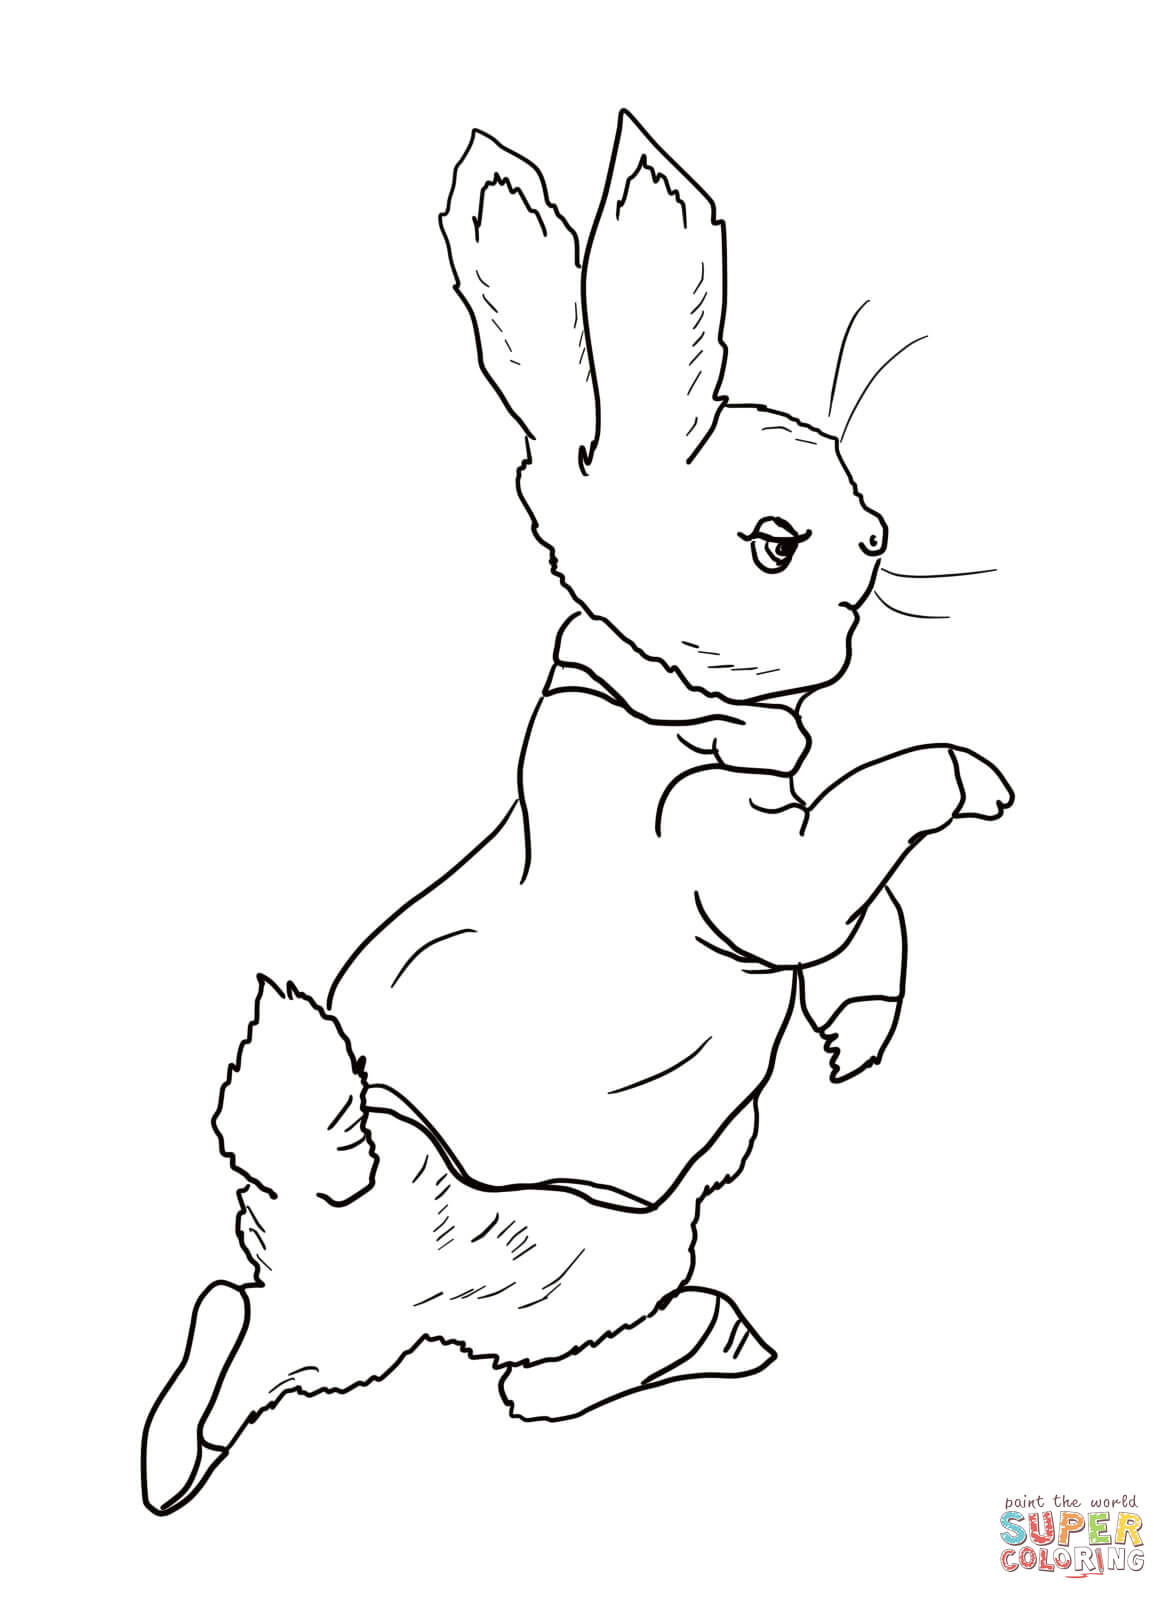 Realistic Rabbit Drawing At Getdrawings Com Free For Personal Use